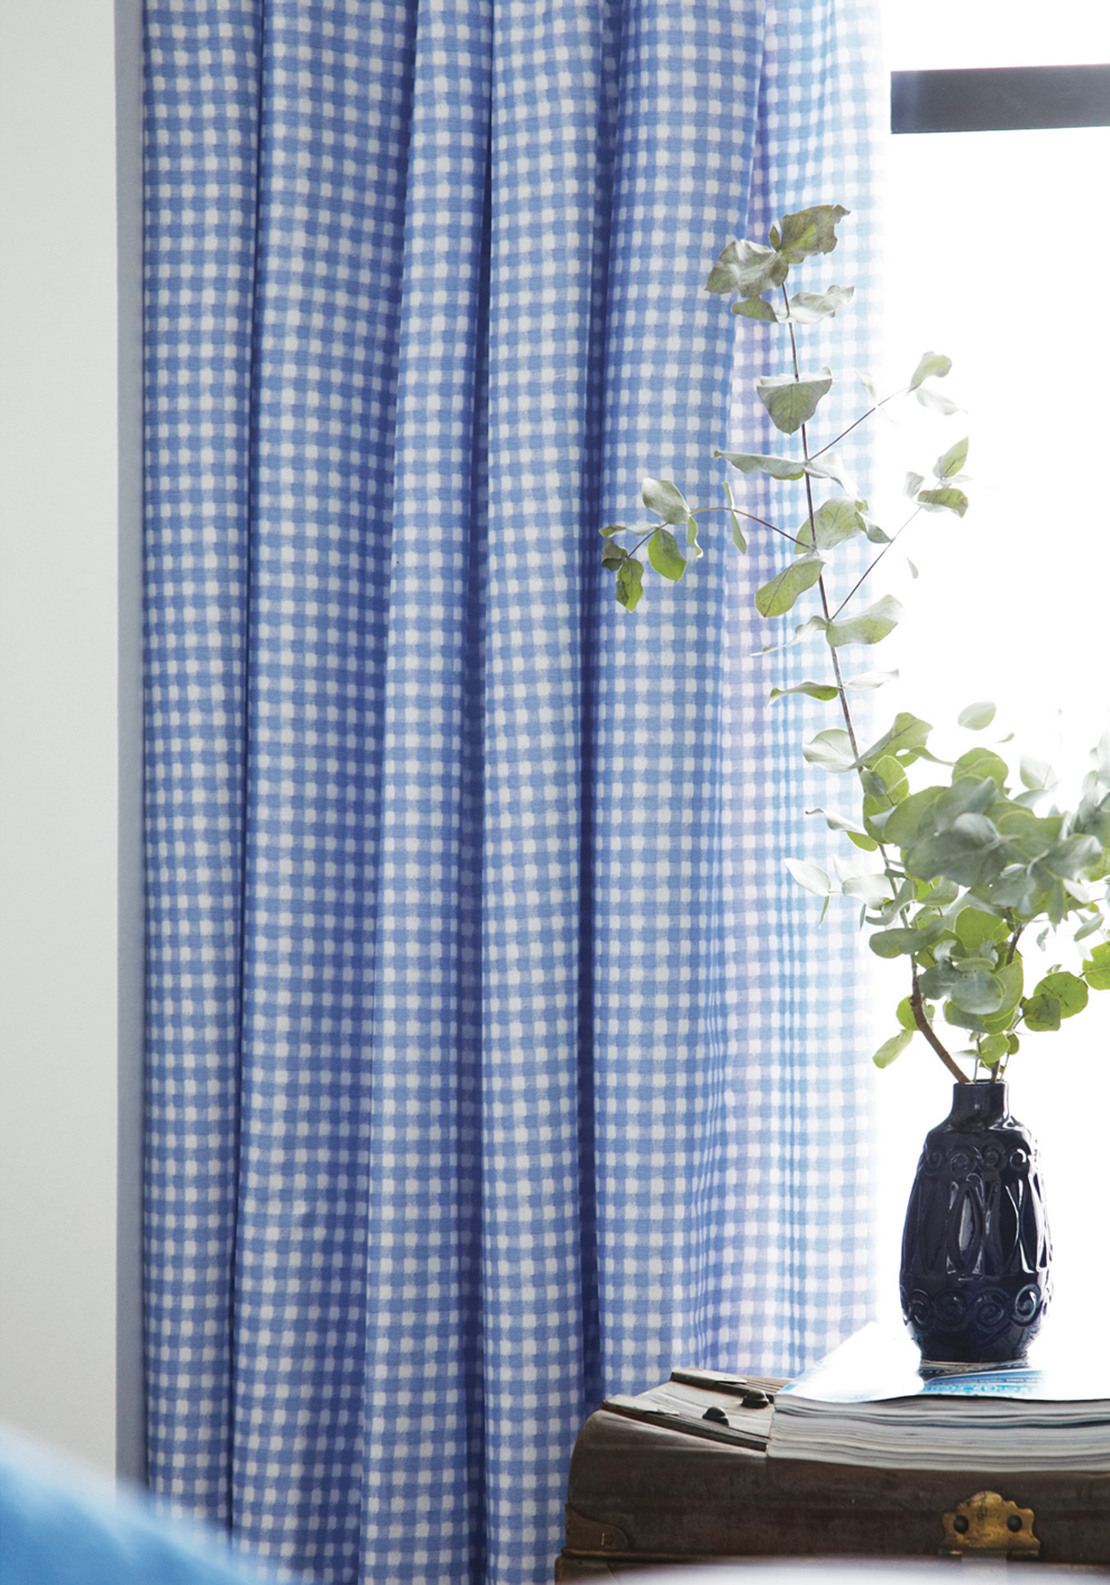 V&A Ikat Gingham Curtains, 66 x 72